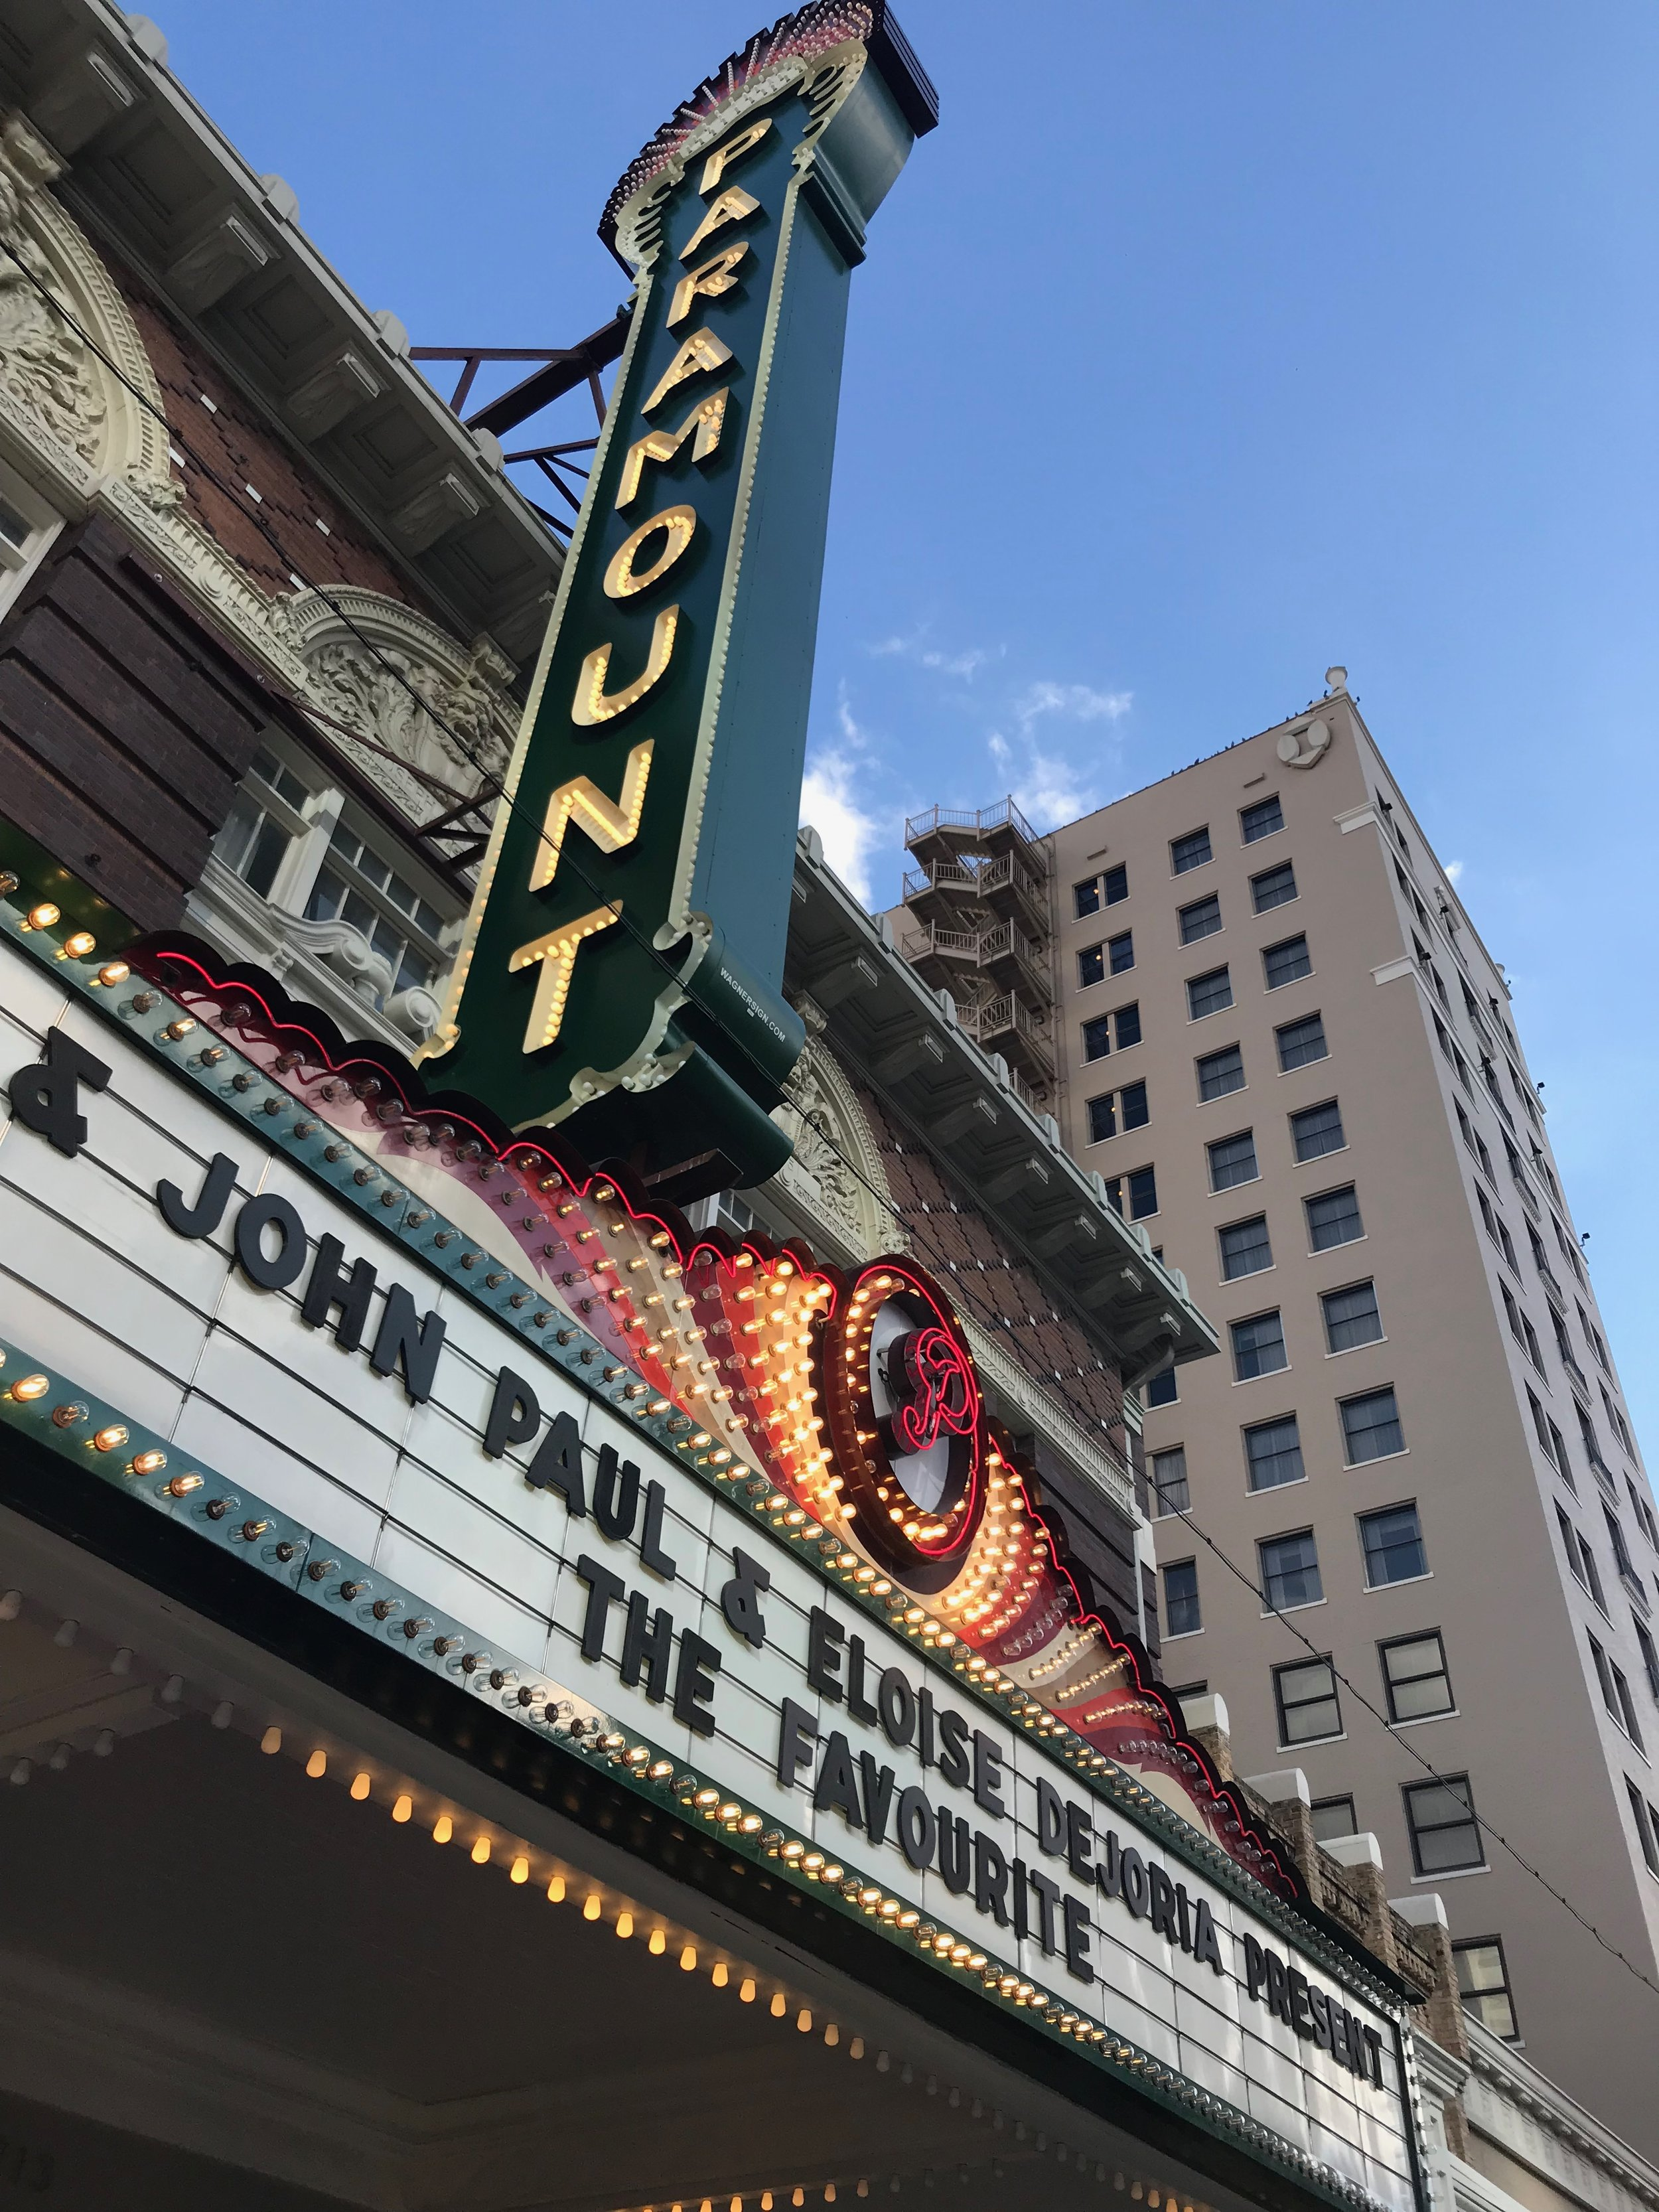 The Paramount Theatre- THE place to premiere your film in Austin